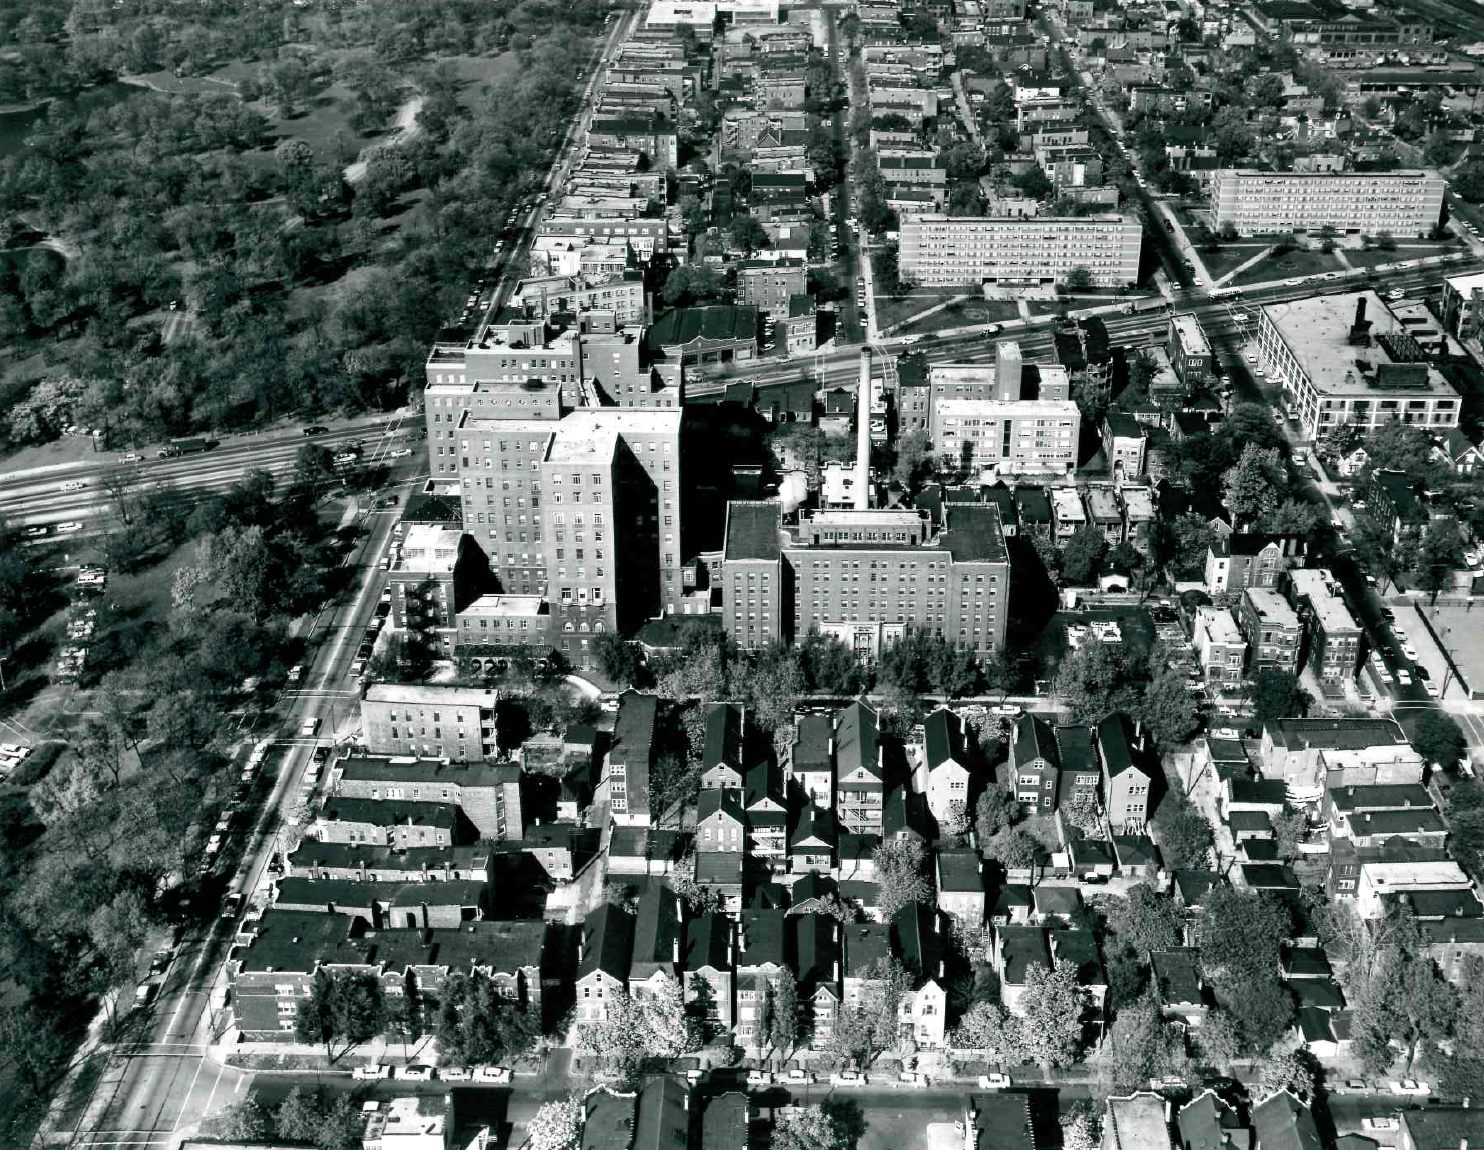 - Mount Sinai Hospital, the anchor institution of Sinai Health System and longtime JT client and friend, is celebrating its 100th anniversary in 2019.